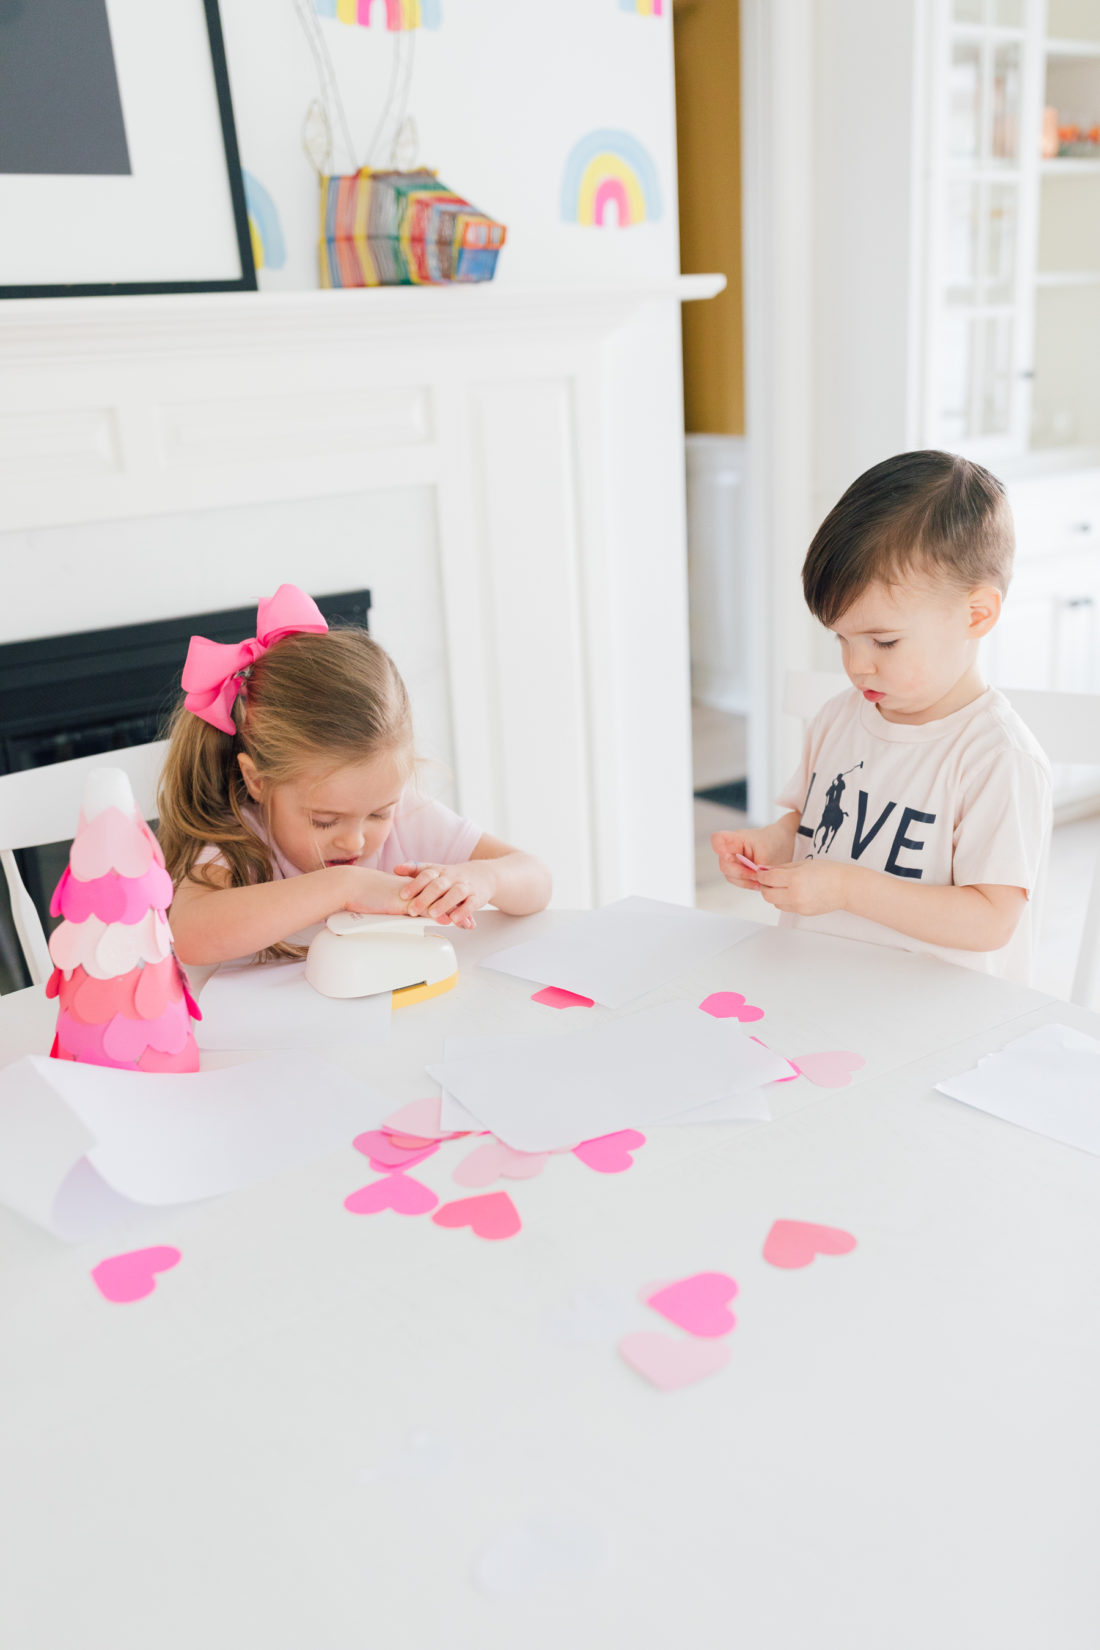 Marlowe and Major martino wear shades of pink and use a large heart hole punch to make materials for a Valentine's Day craft